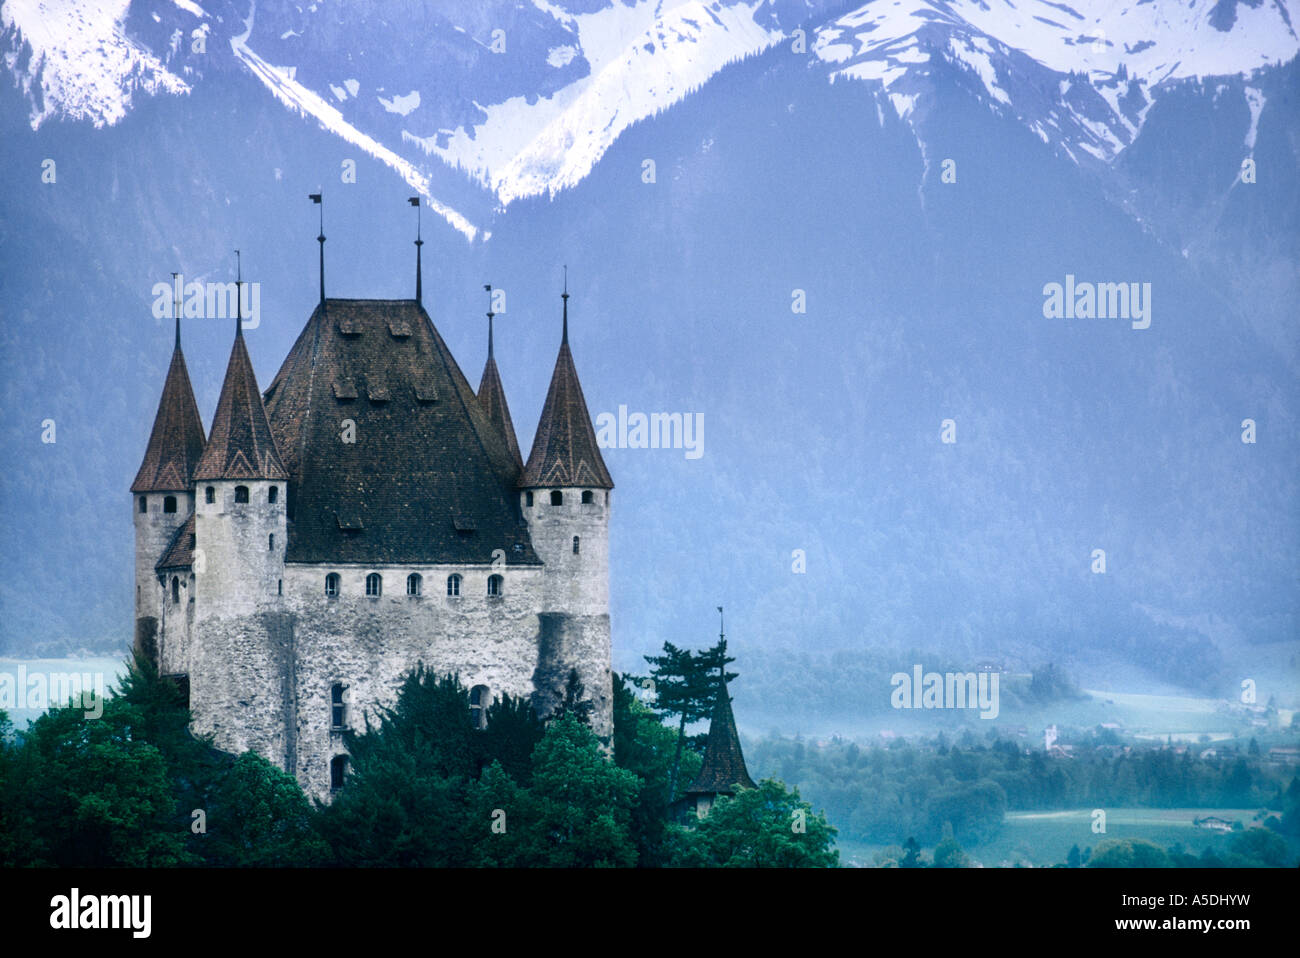 Castle Thun Romantic Castle Perched On Small Hilltop